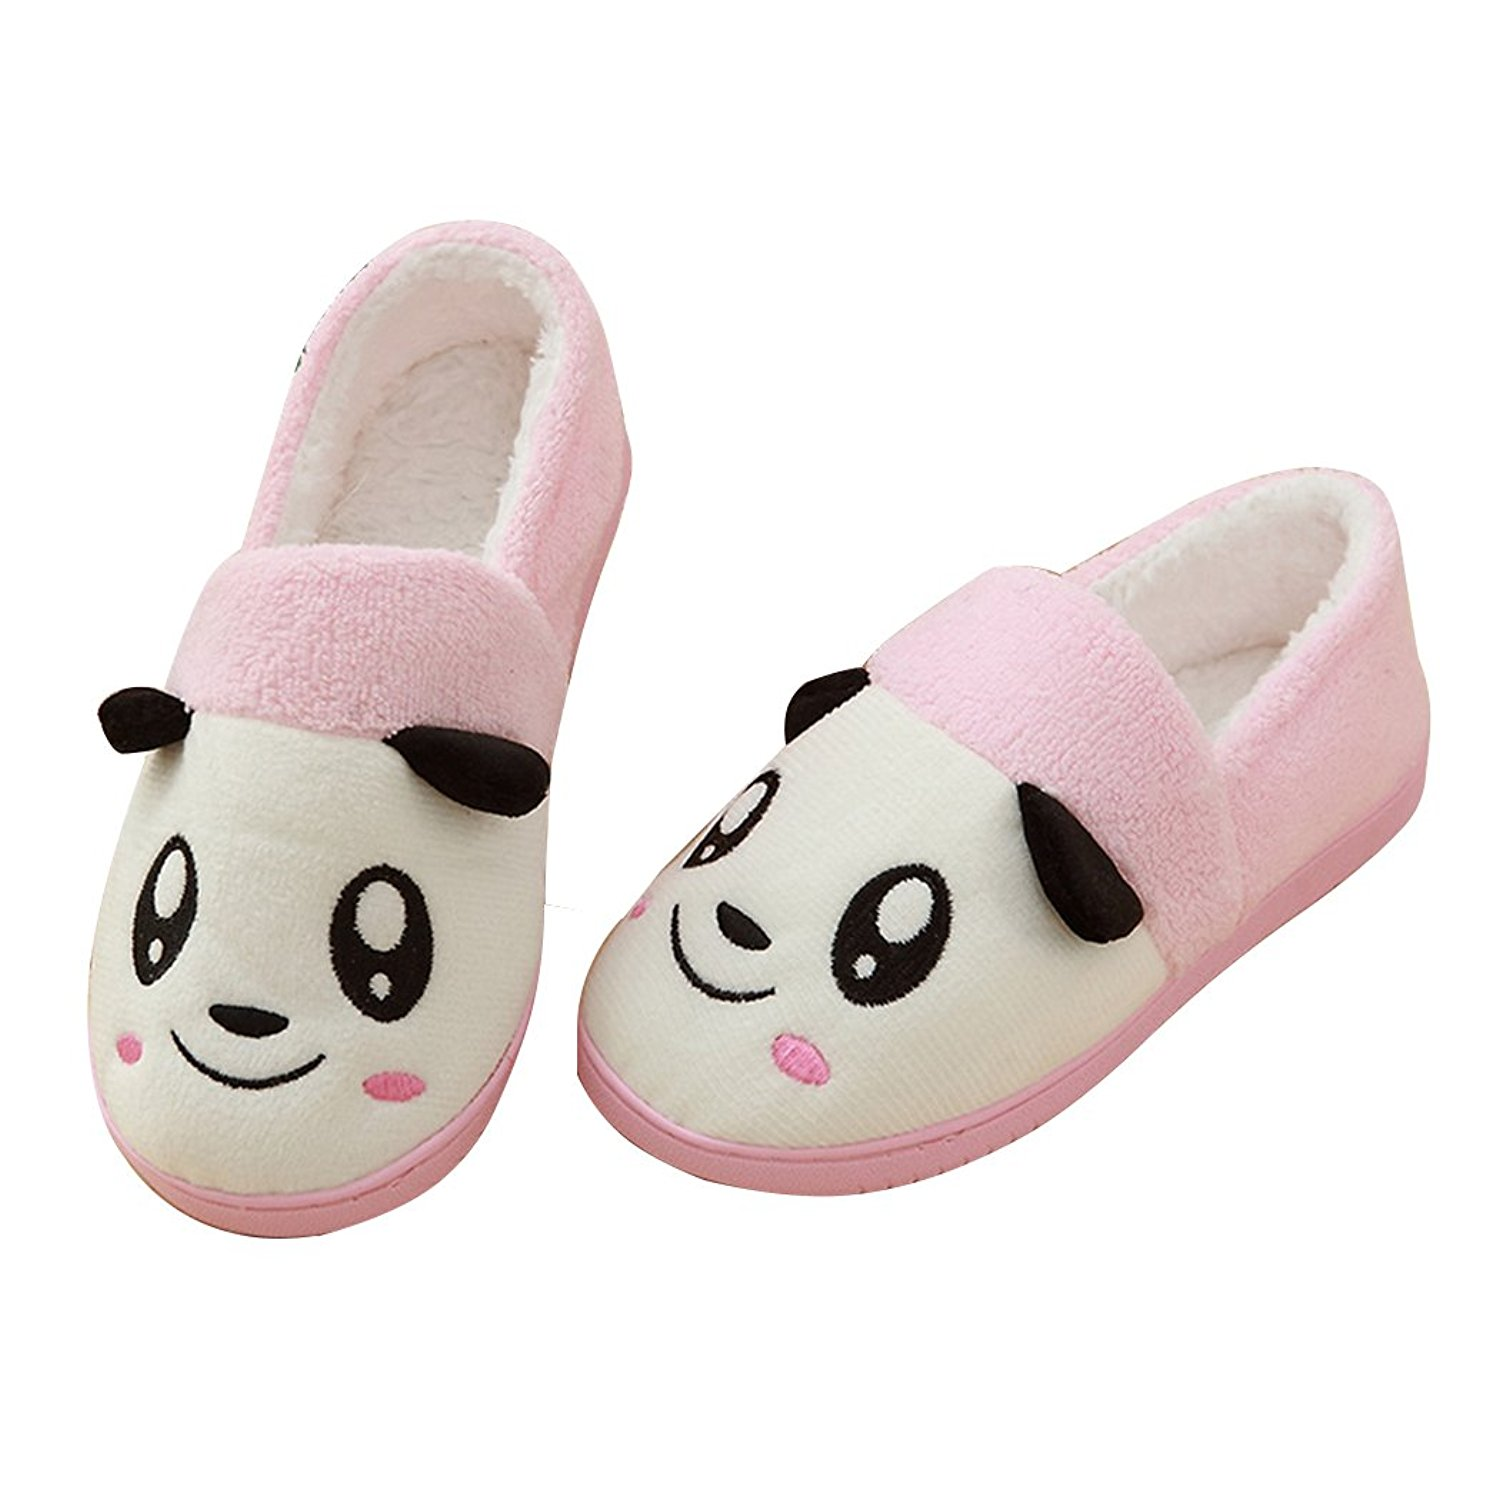 MiYang Winter Women's Pure Cotton Soft Sole Washable Anti-Skid Cozy House Shoes Slippers